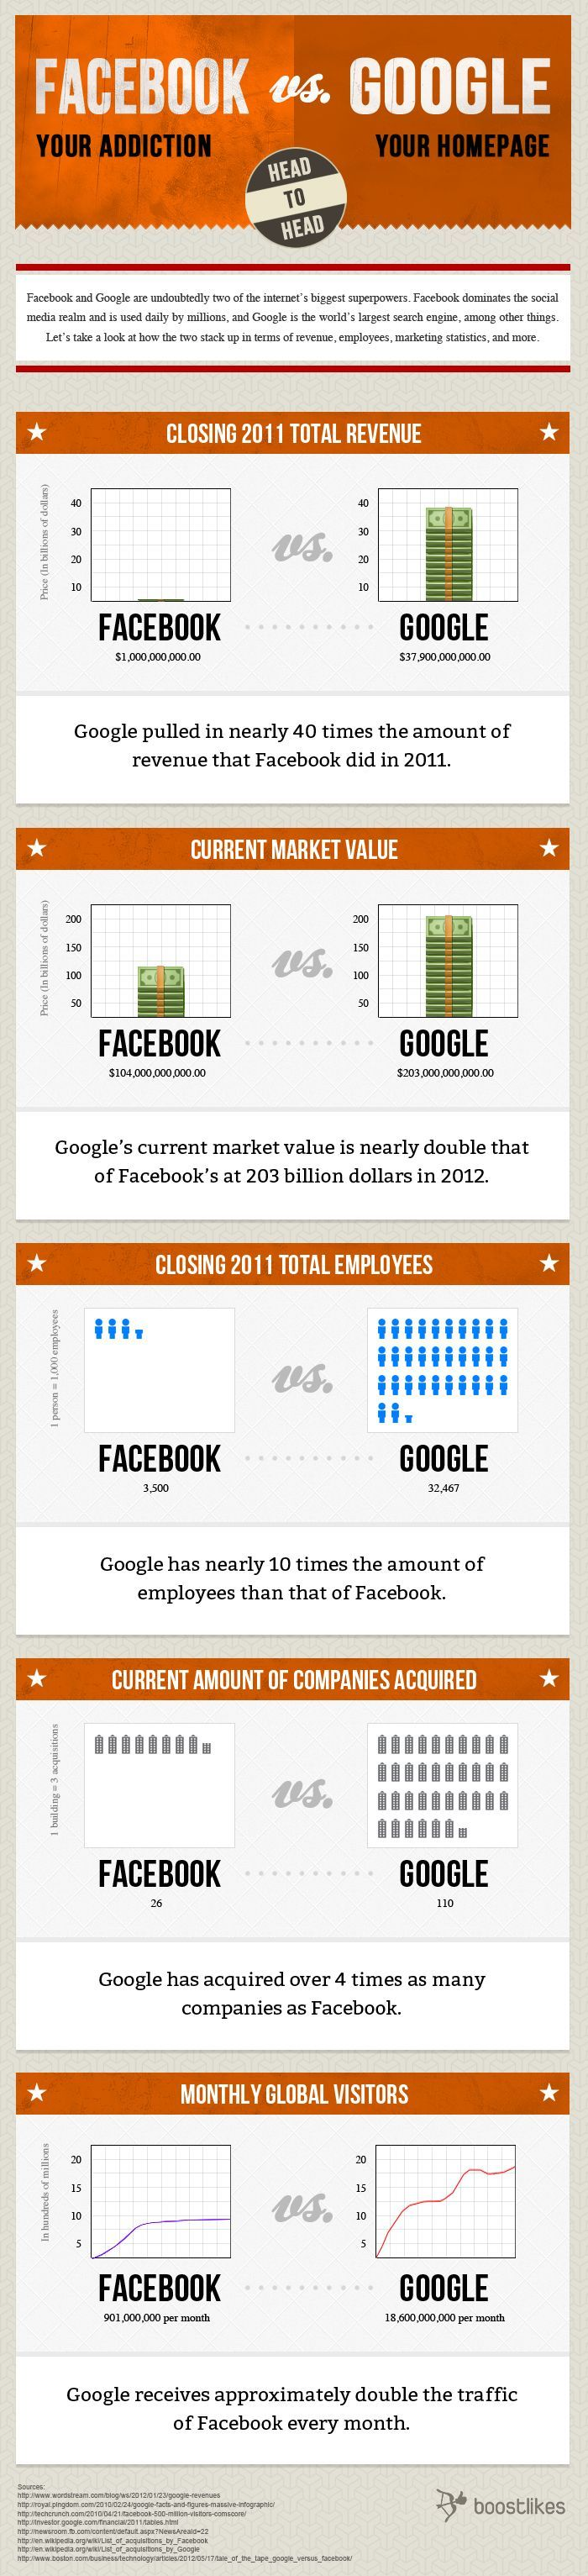 Infographics & Charts  -- This interesting infographic depicting key numbers for #Facebook vs. #Google makes it clear that, despite the hype around Facebook's IPO, it's no contest, really.